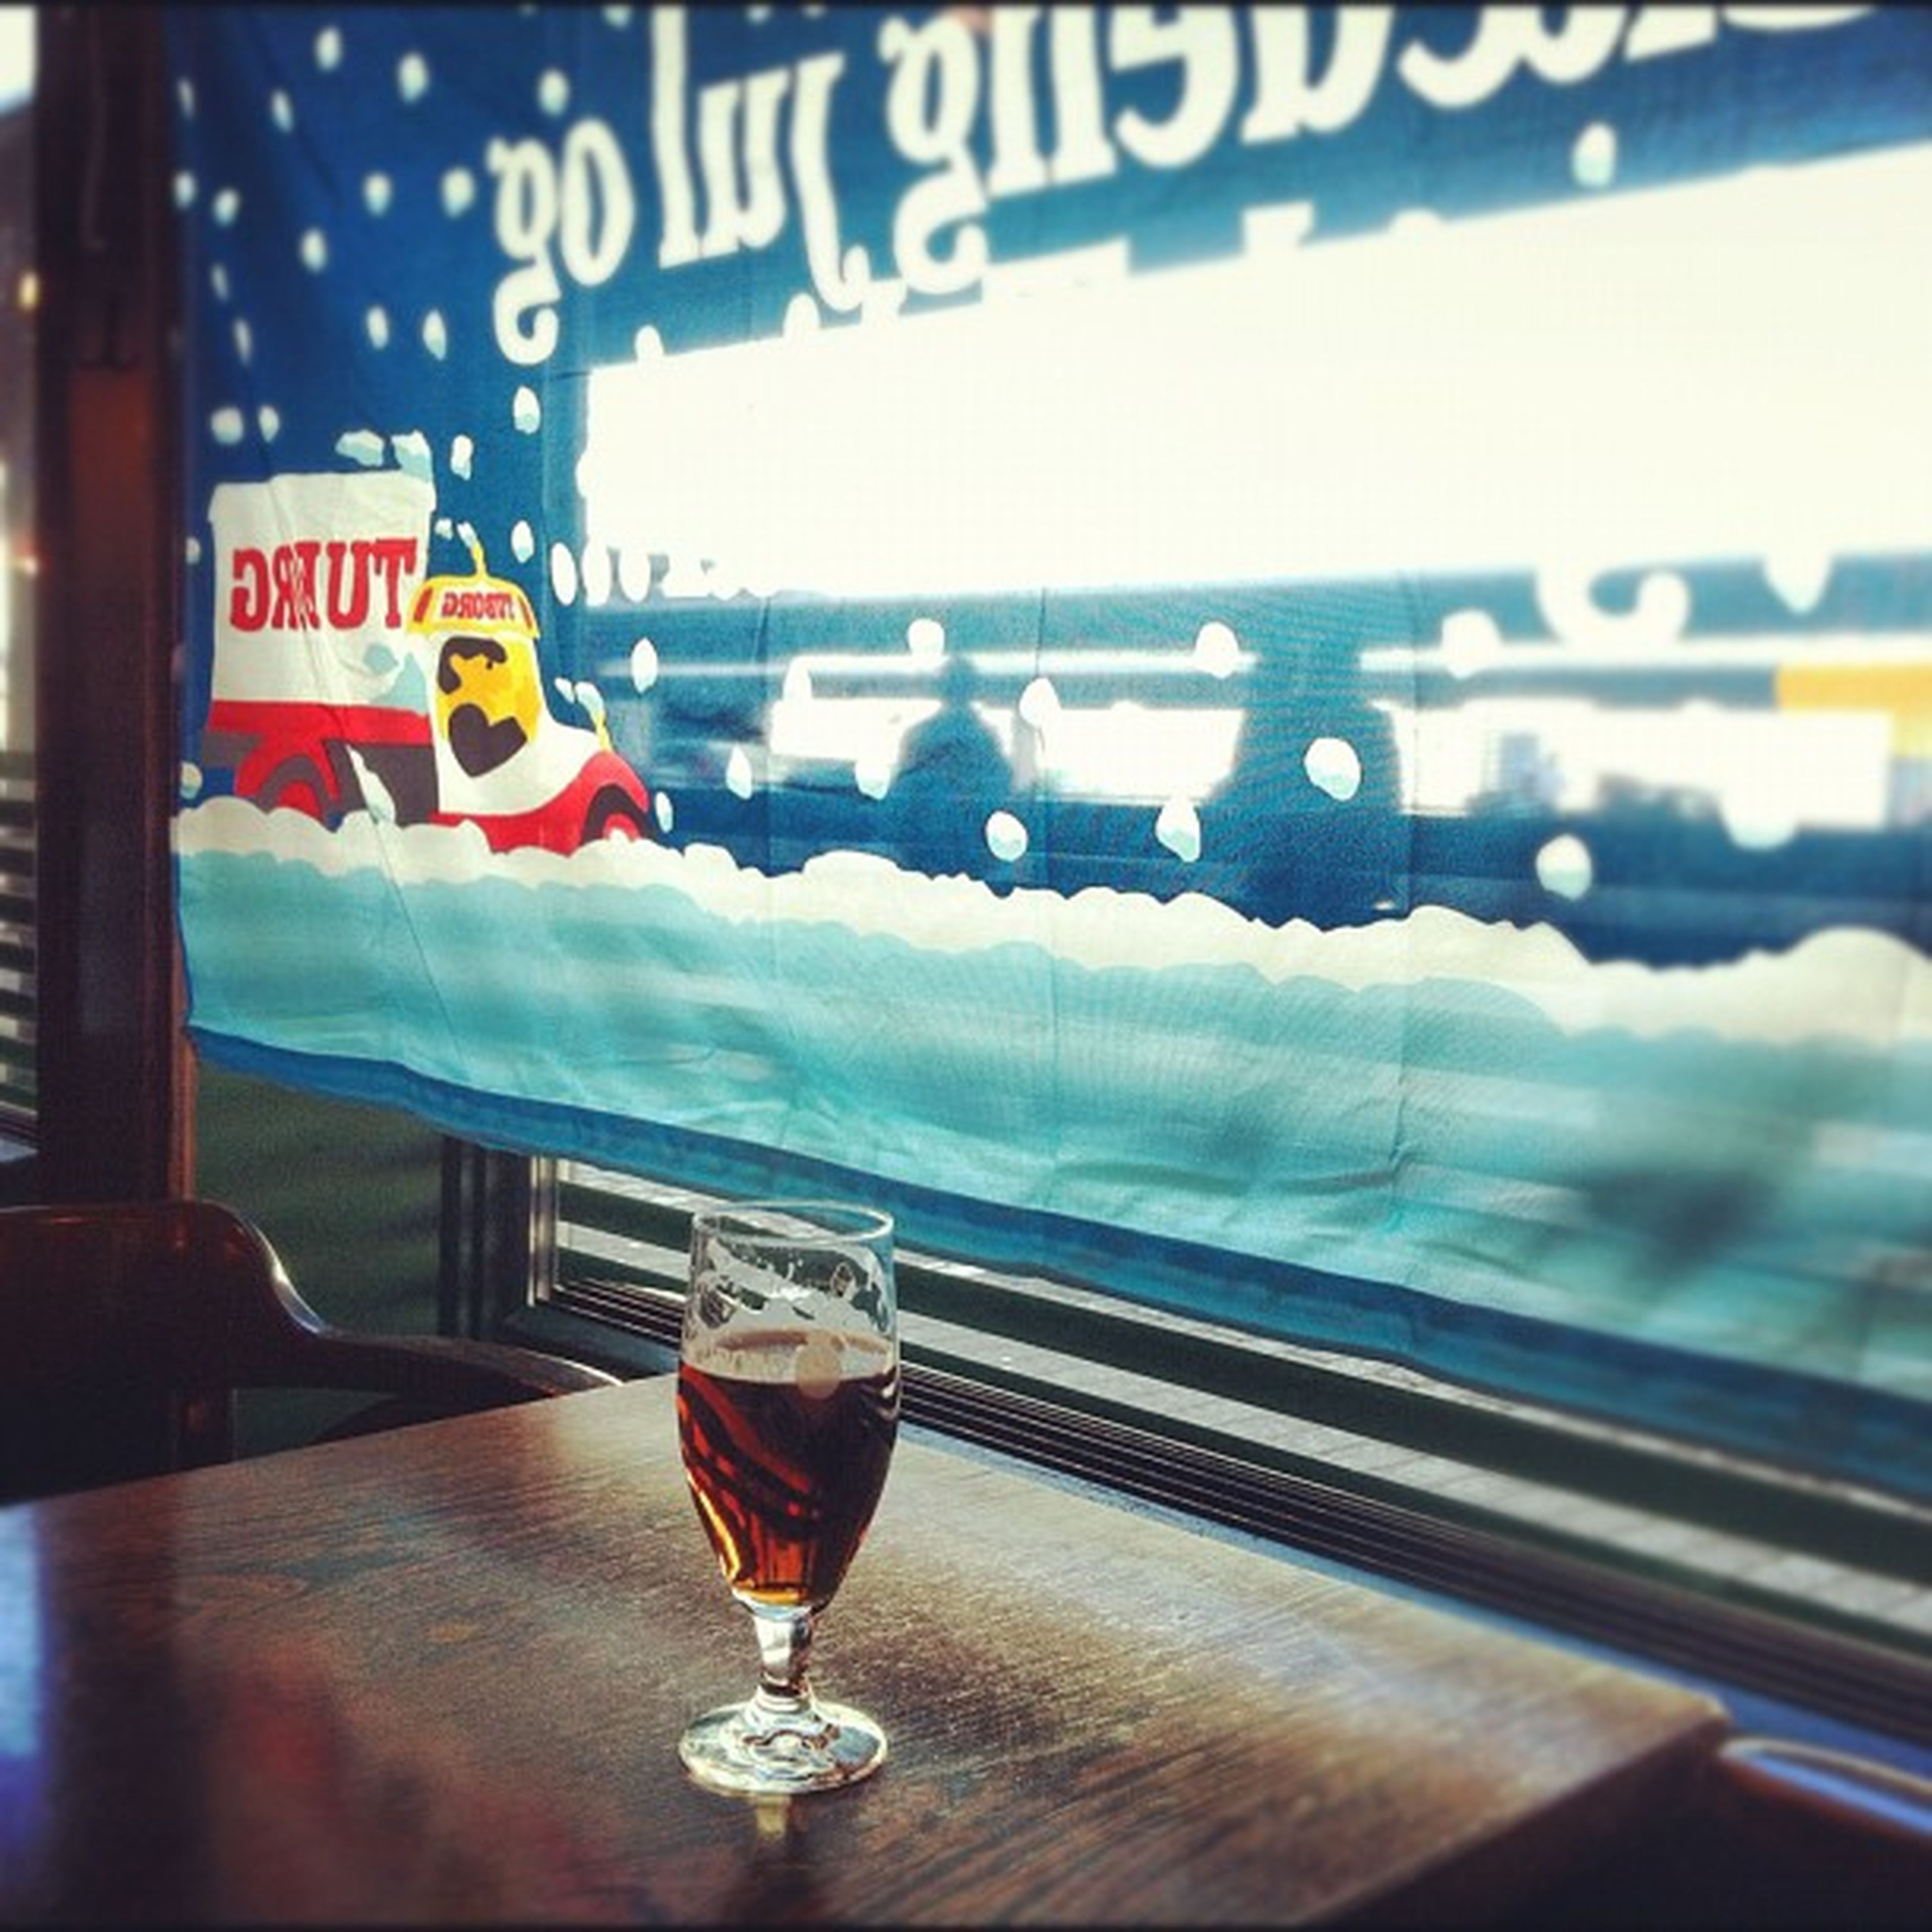 indoors, text, glass - material, transparent, western script, communication, focus on foreground, close-up, table, water, transportation, window, reflection, vehicle interior, no people, selective focus, glass, refreshment, drink, still life